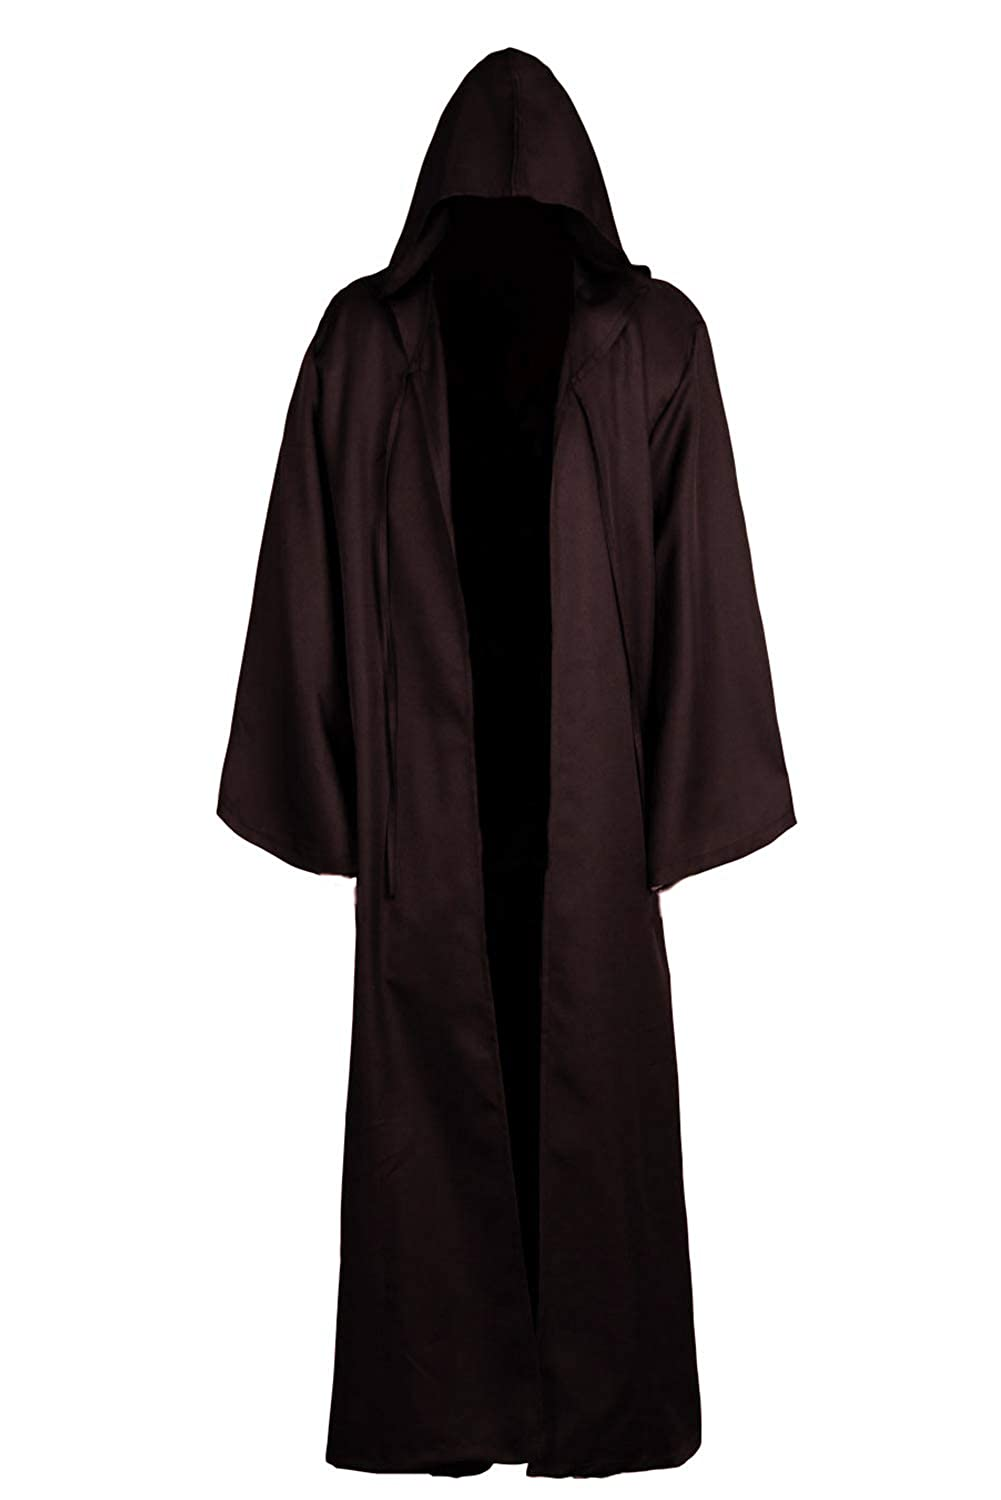 JOYSHOP Men & Kids Tunic Hooded Robe Halloween Cosplay Costume Robe Cloak Cape